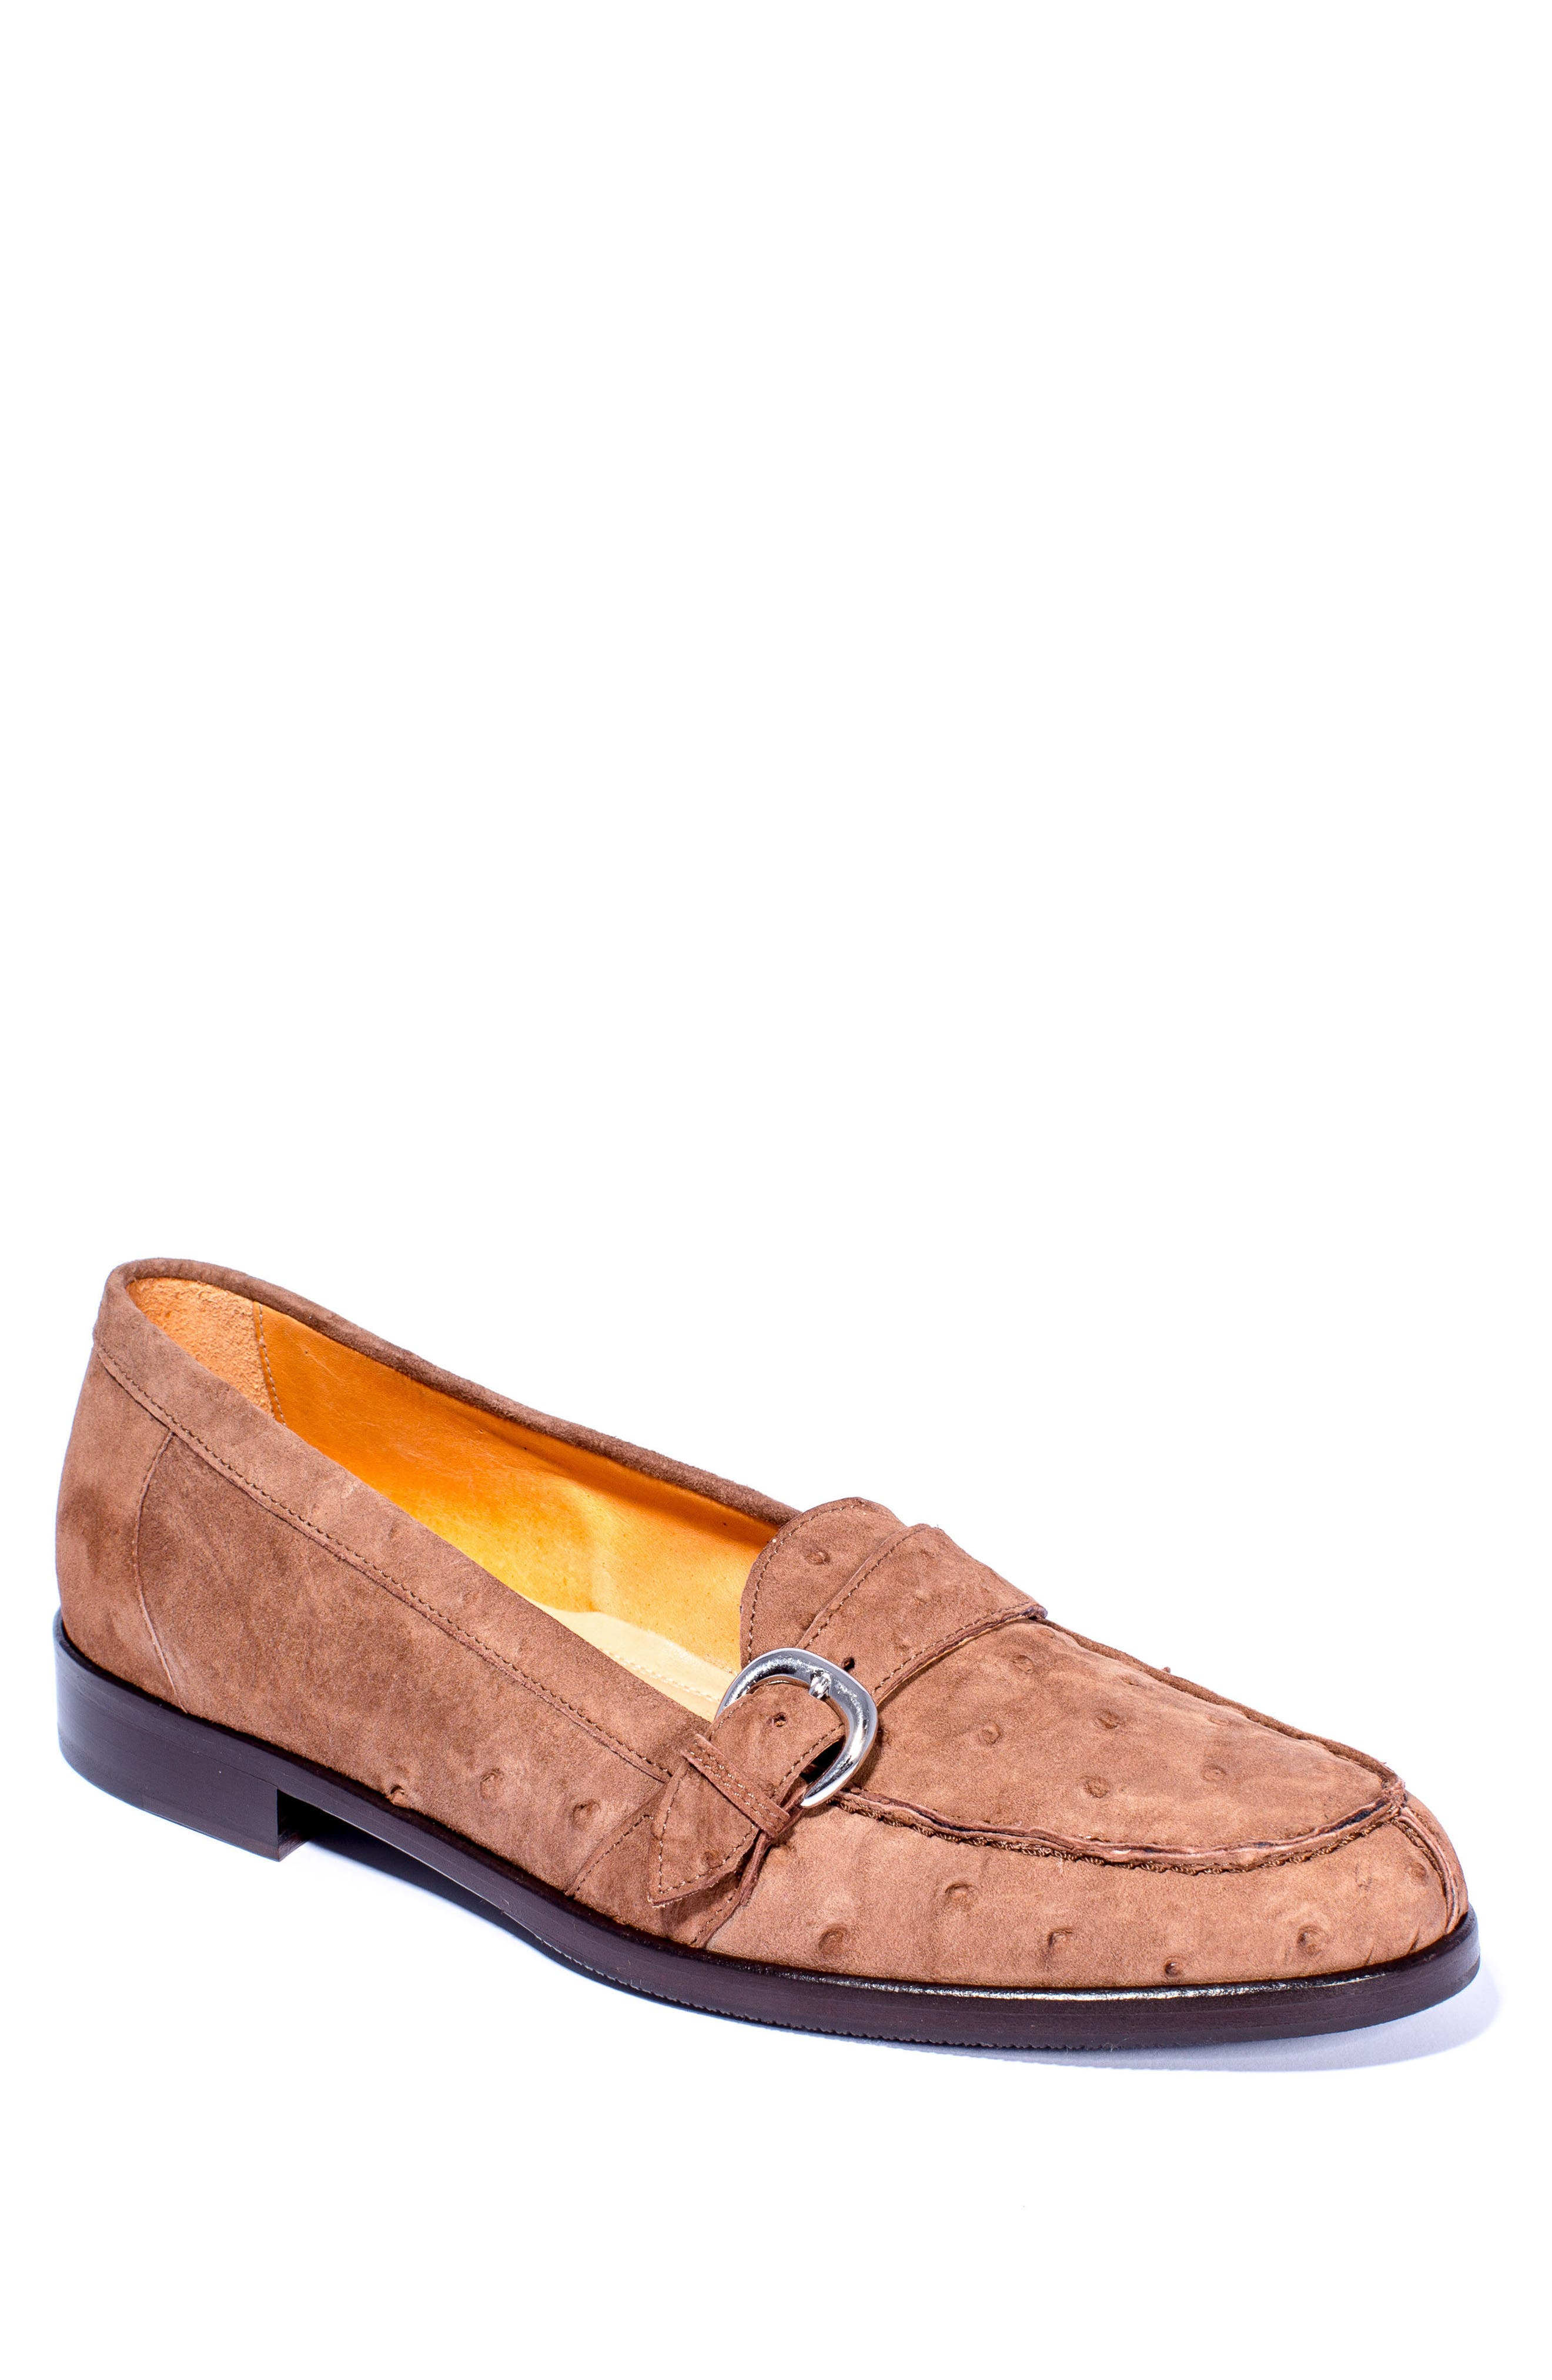 Orlando Teju Ostrich Loafer,                             Main thumbnail 1, color,                             200